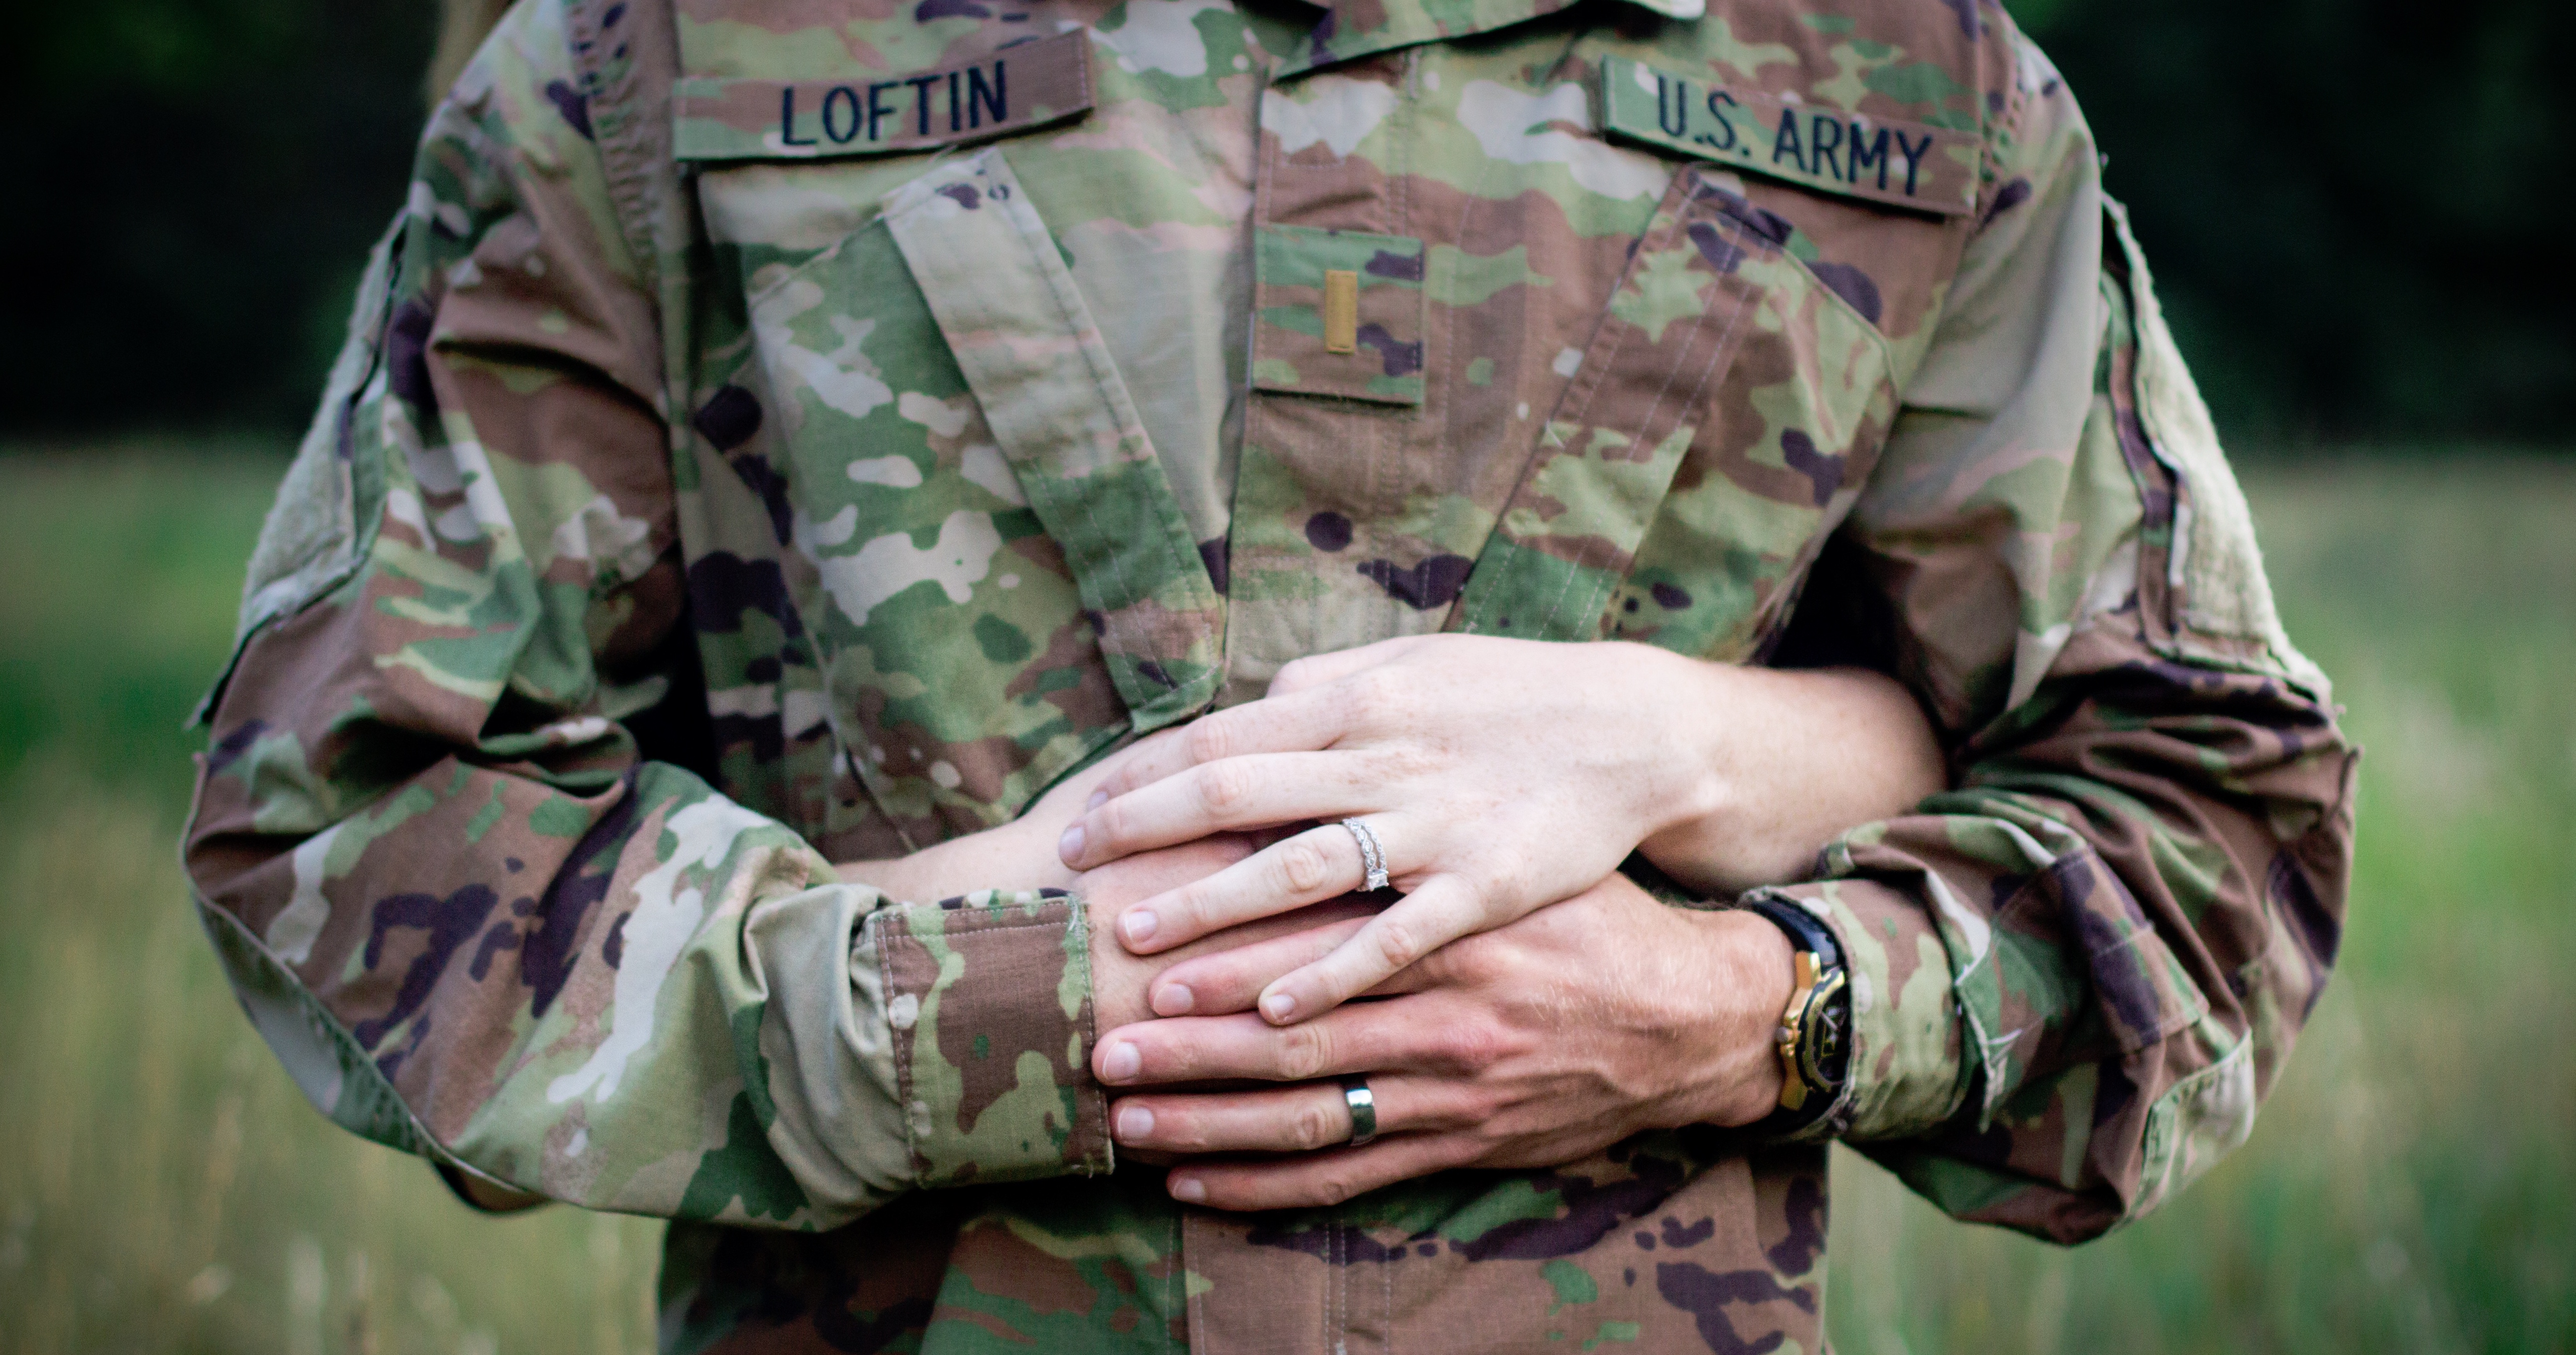 A military couple embrace each other and display their sparkling wedding bands